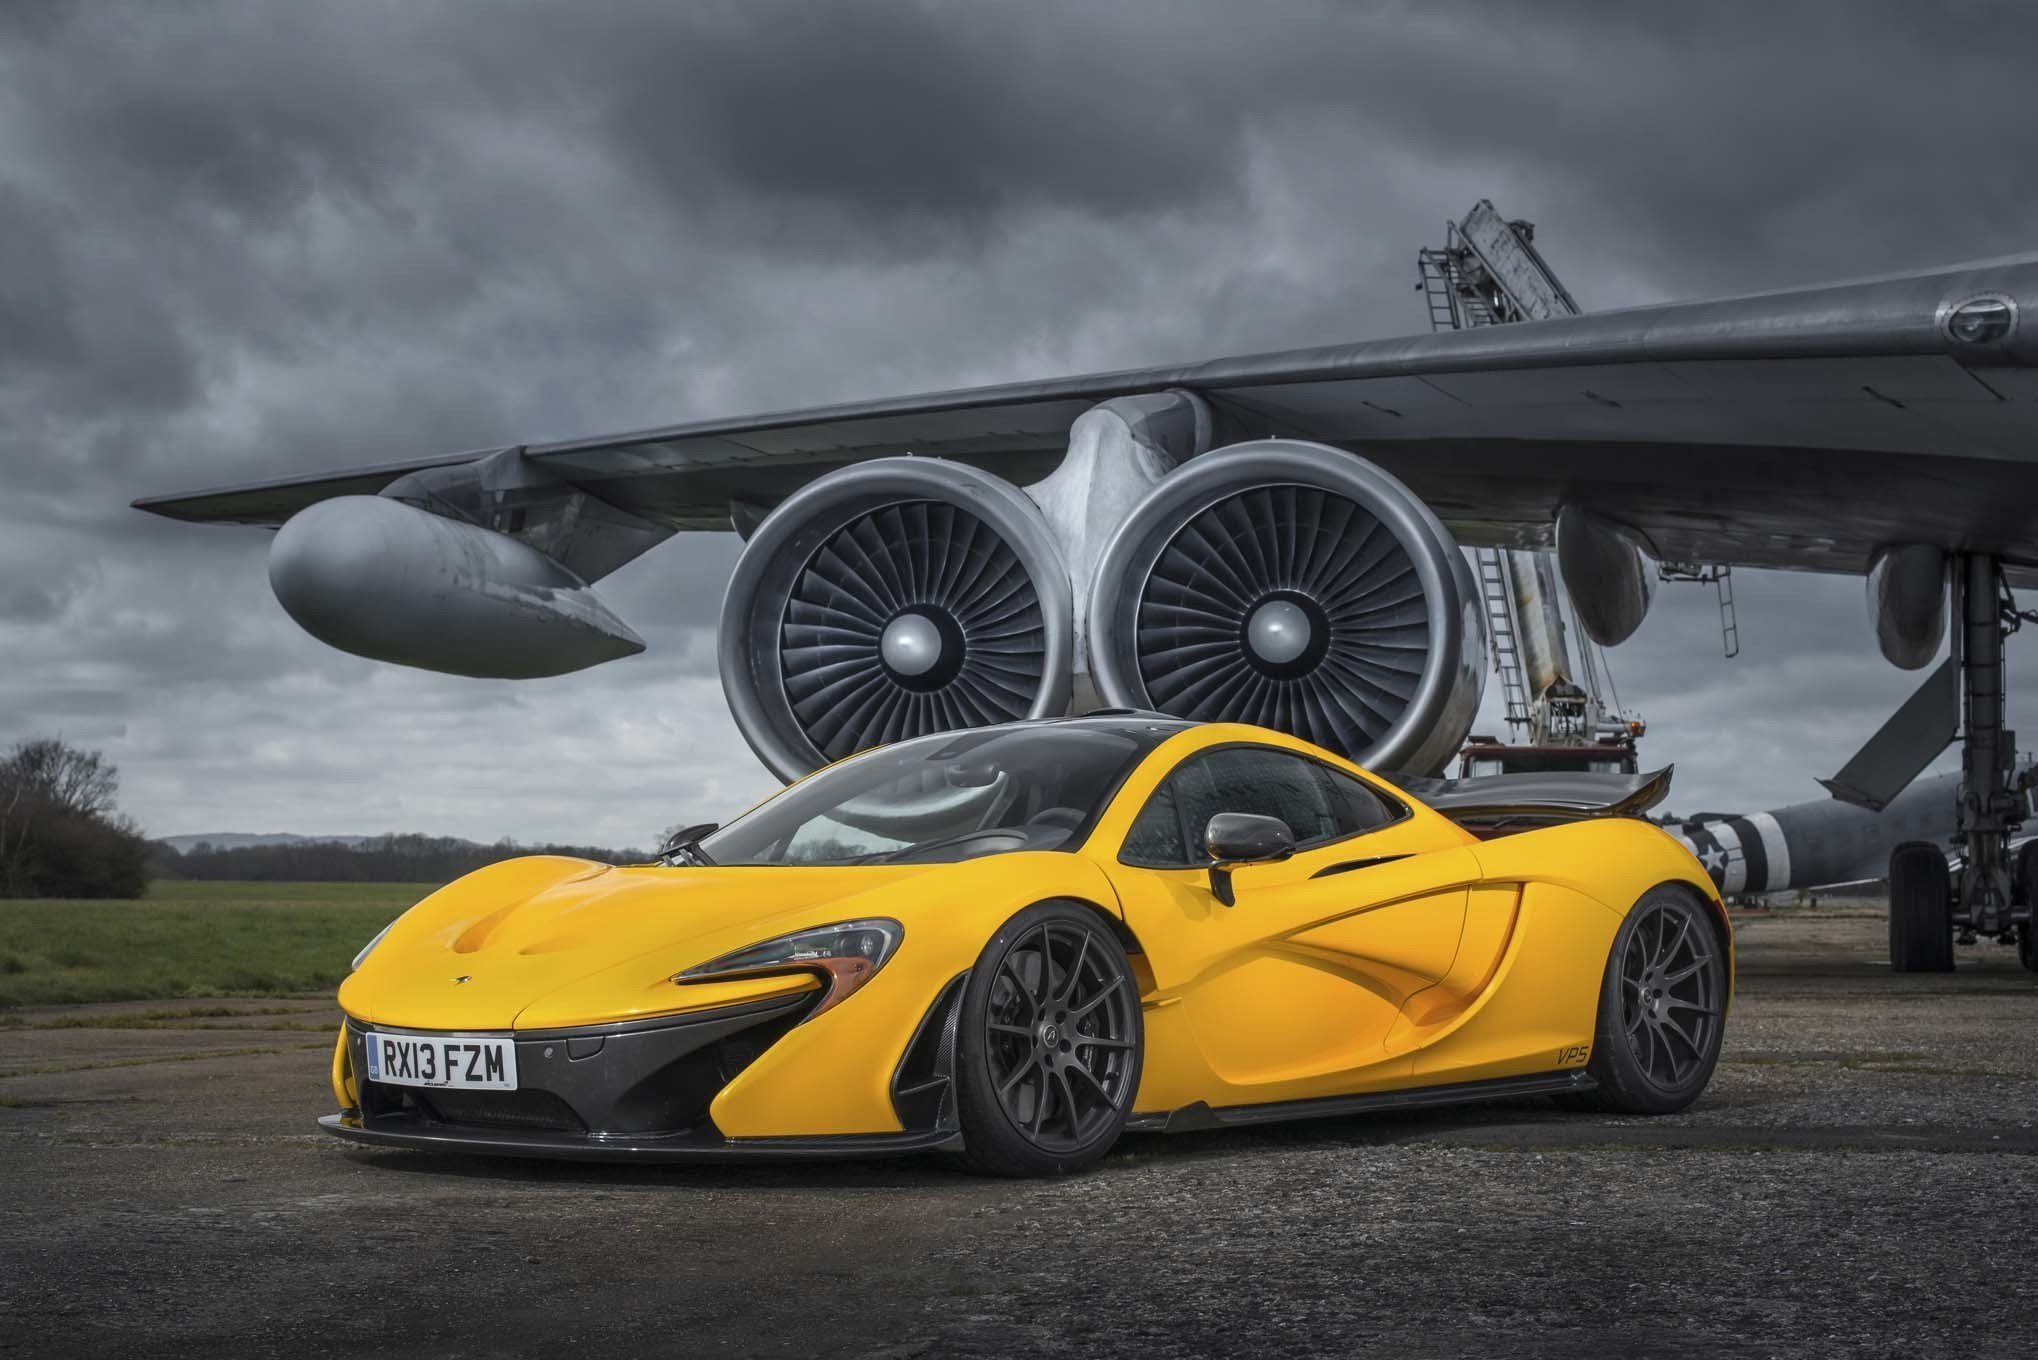 New Mclaren Automotive Wallpapers 71 Images On This Month